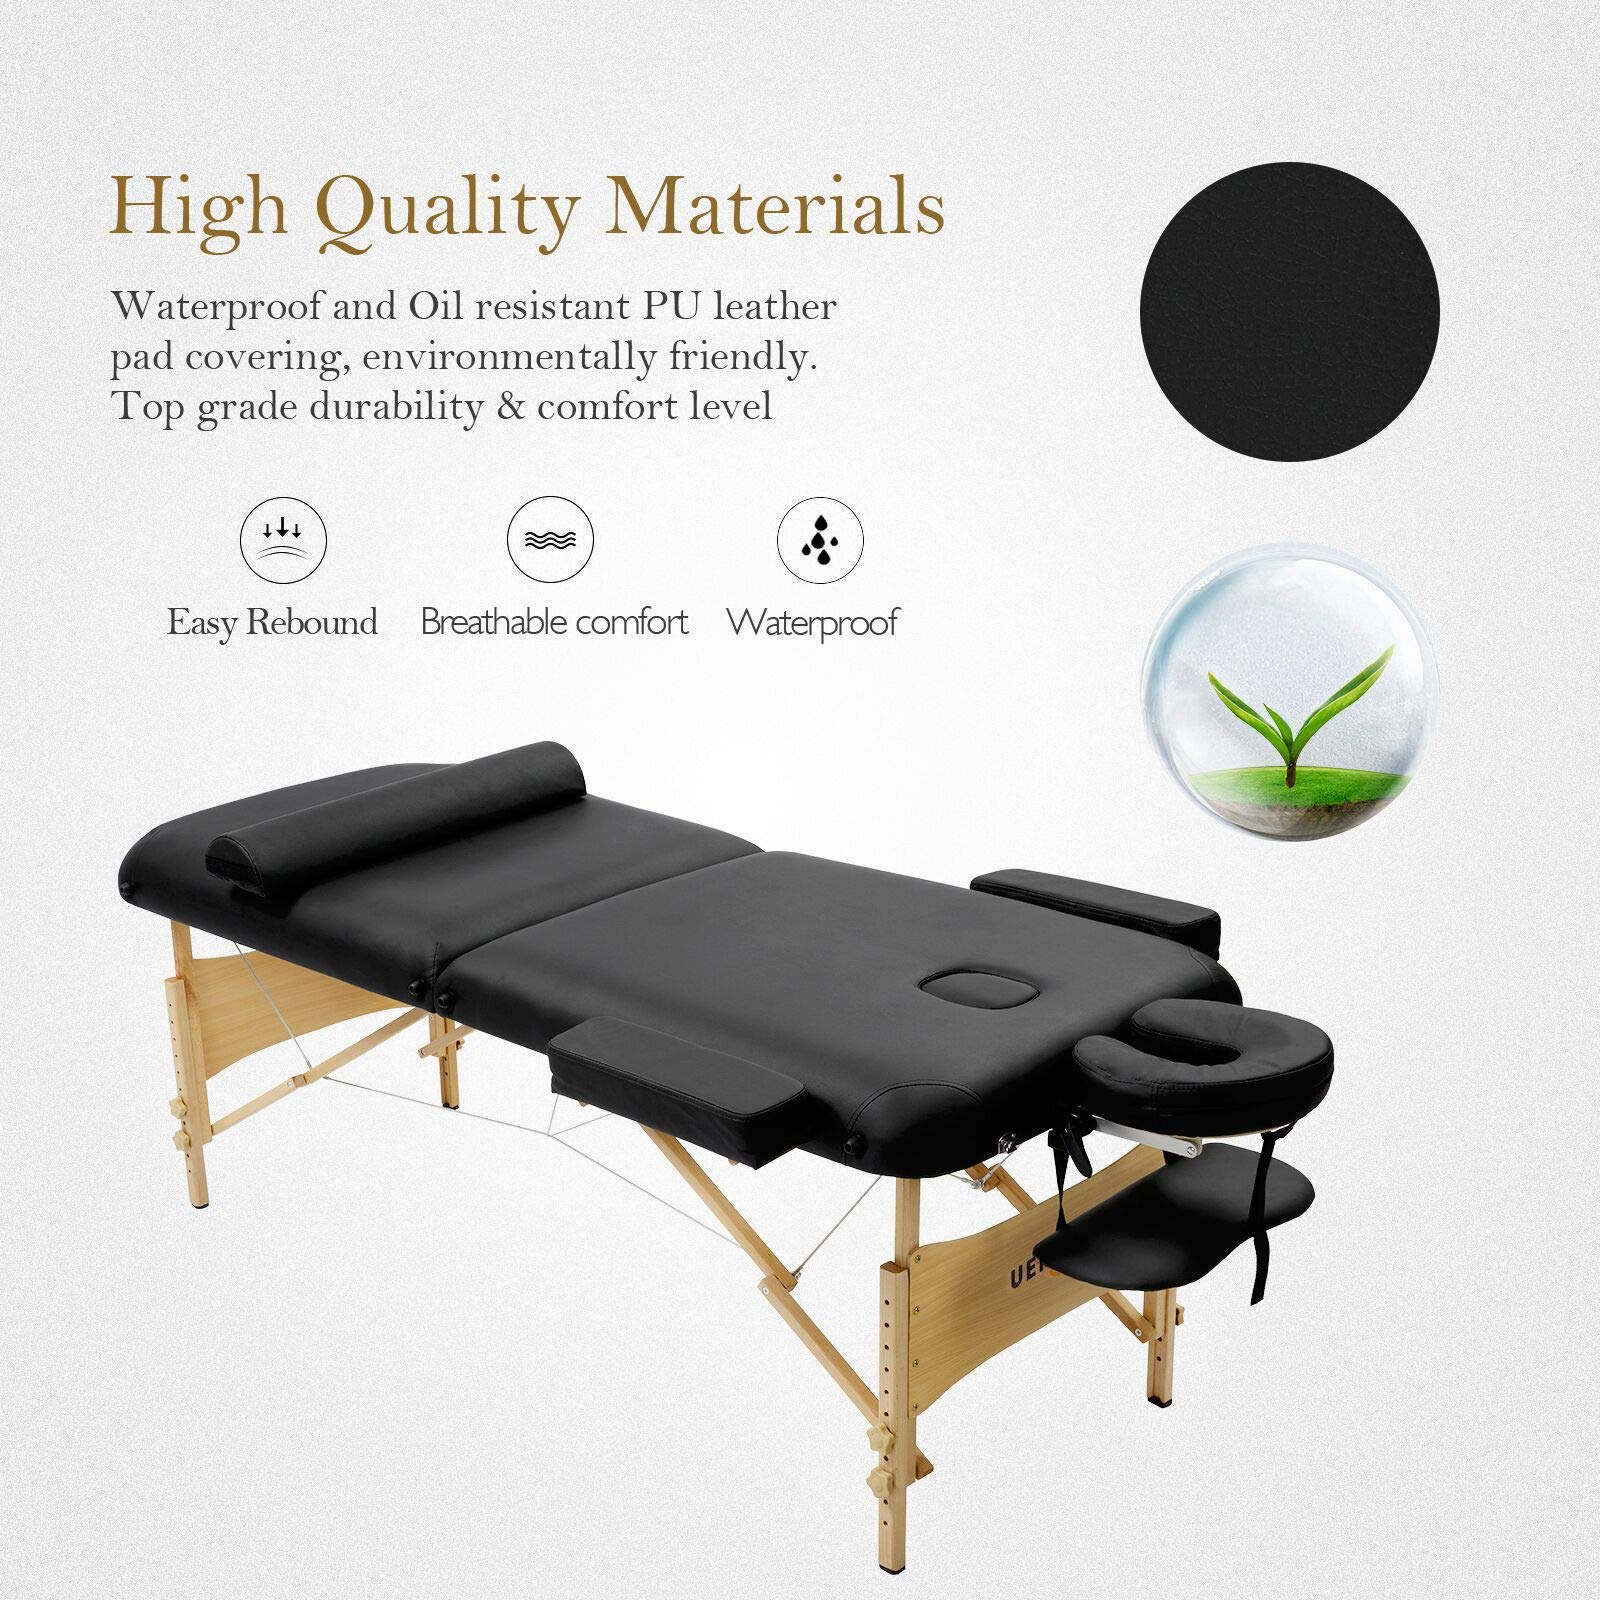 Uenjoy Massage Table 84'' Professional Folding Massage Bed Deluxe Model with Extra Width, Ultra-thick Sponge, PU Leather Surface & Additional Accessories, 2 Fold, Black by Uenjoy (Image #7)